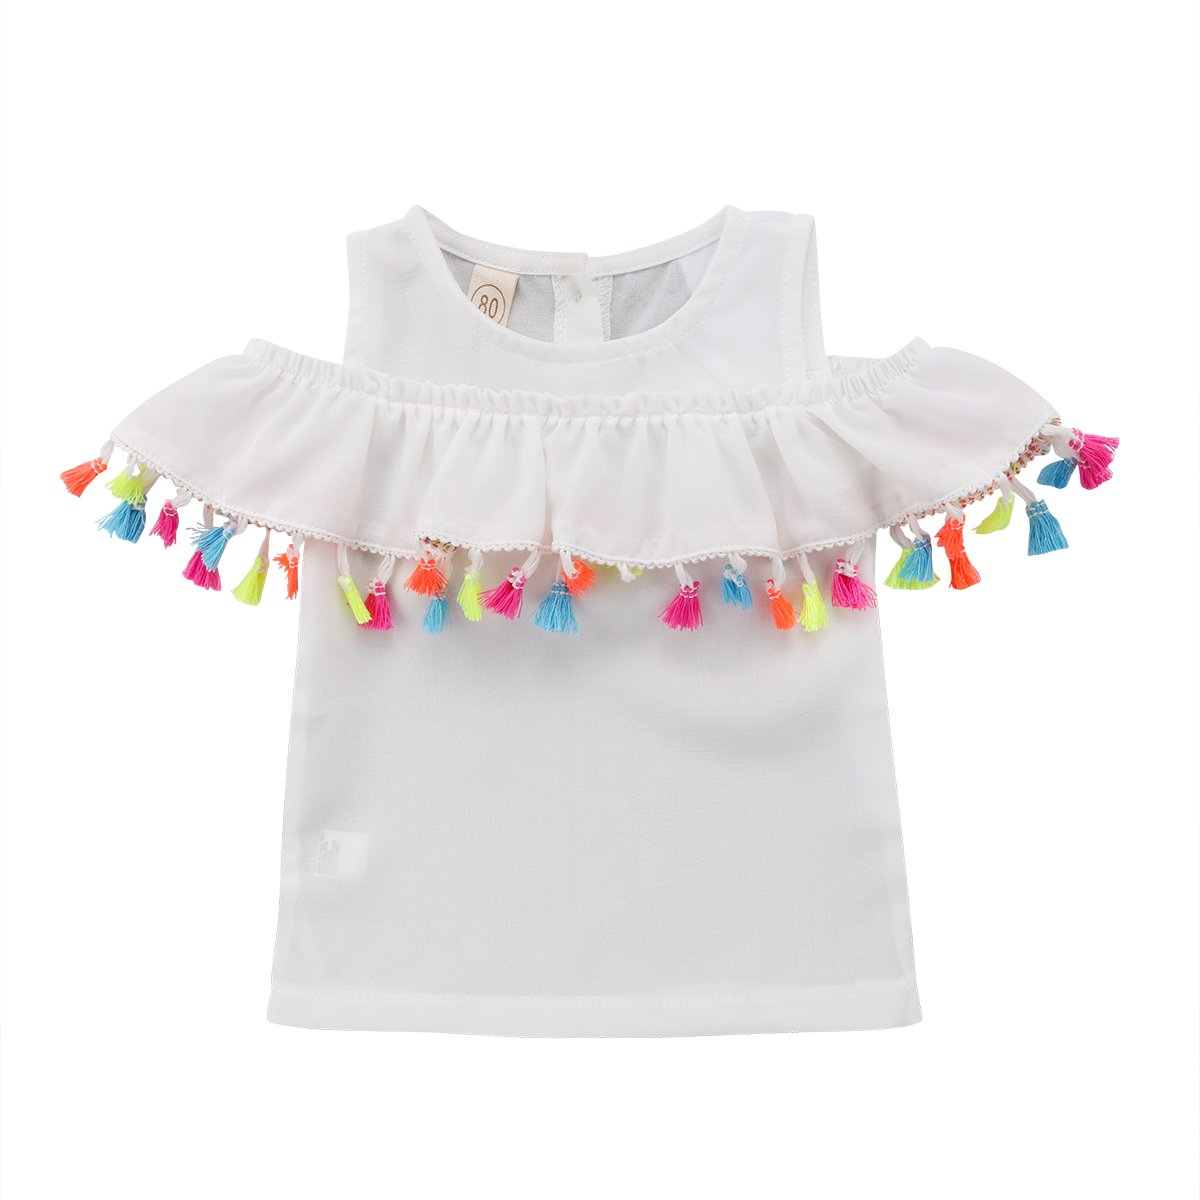 Alione Infant Toddler Baby Girls Cold Shoudler Tops Shirt Tassels Blouse Summer Short Sleeve Dress